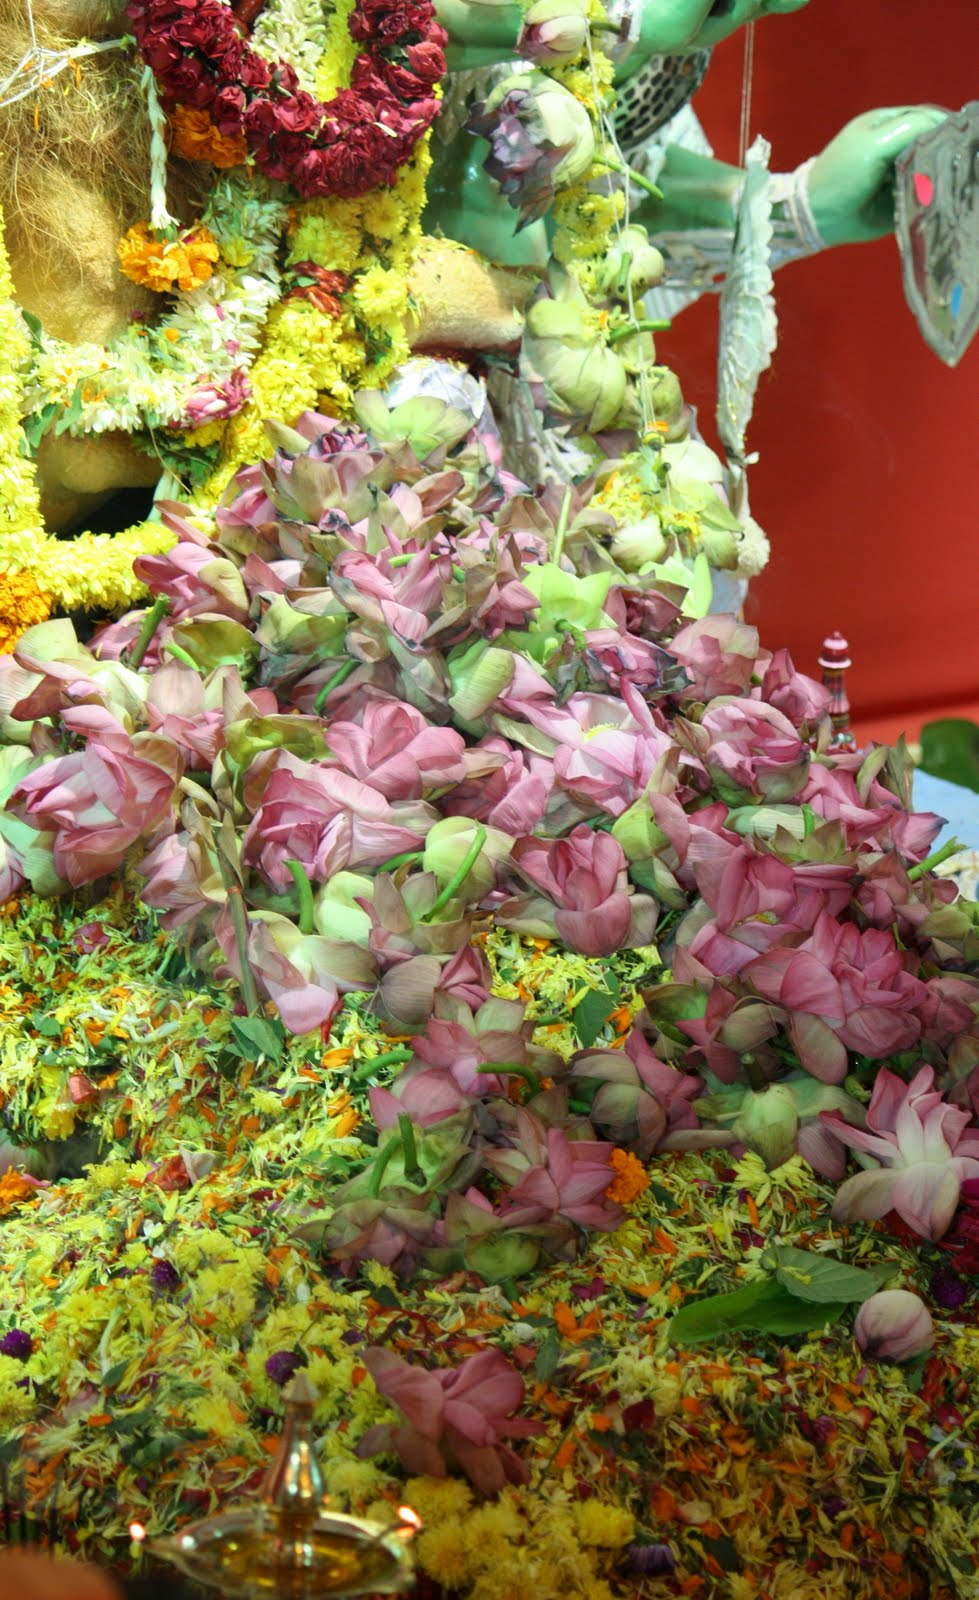 Significance of 108 lotus flowers on ashtami of durga puja i share one who performs his duty without attachment surrendering the results unto the supreme lord is unaffected by sinful action as the lotus leaf is izmirmasajfo